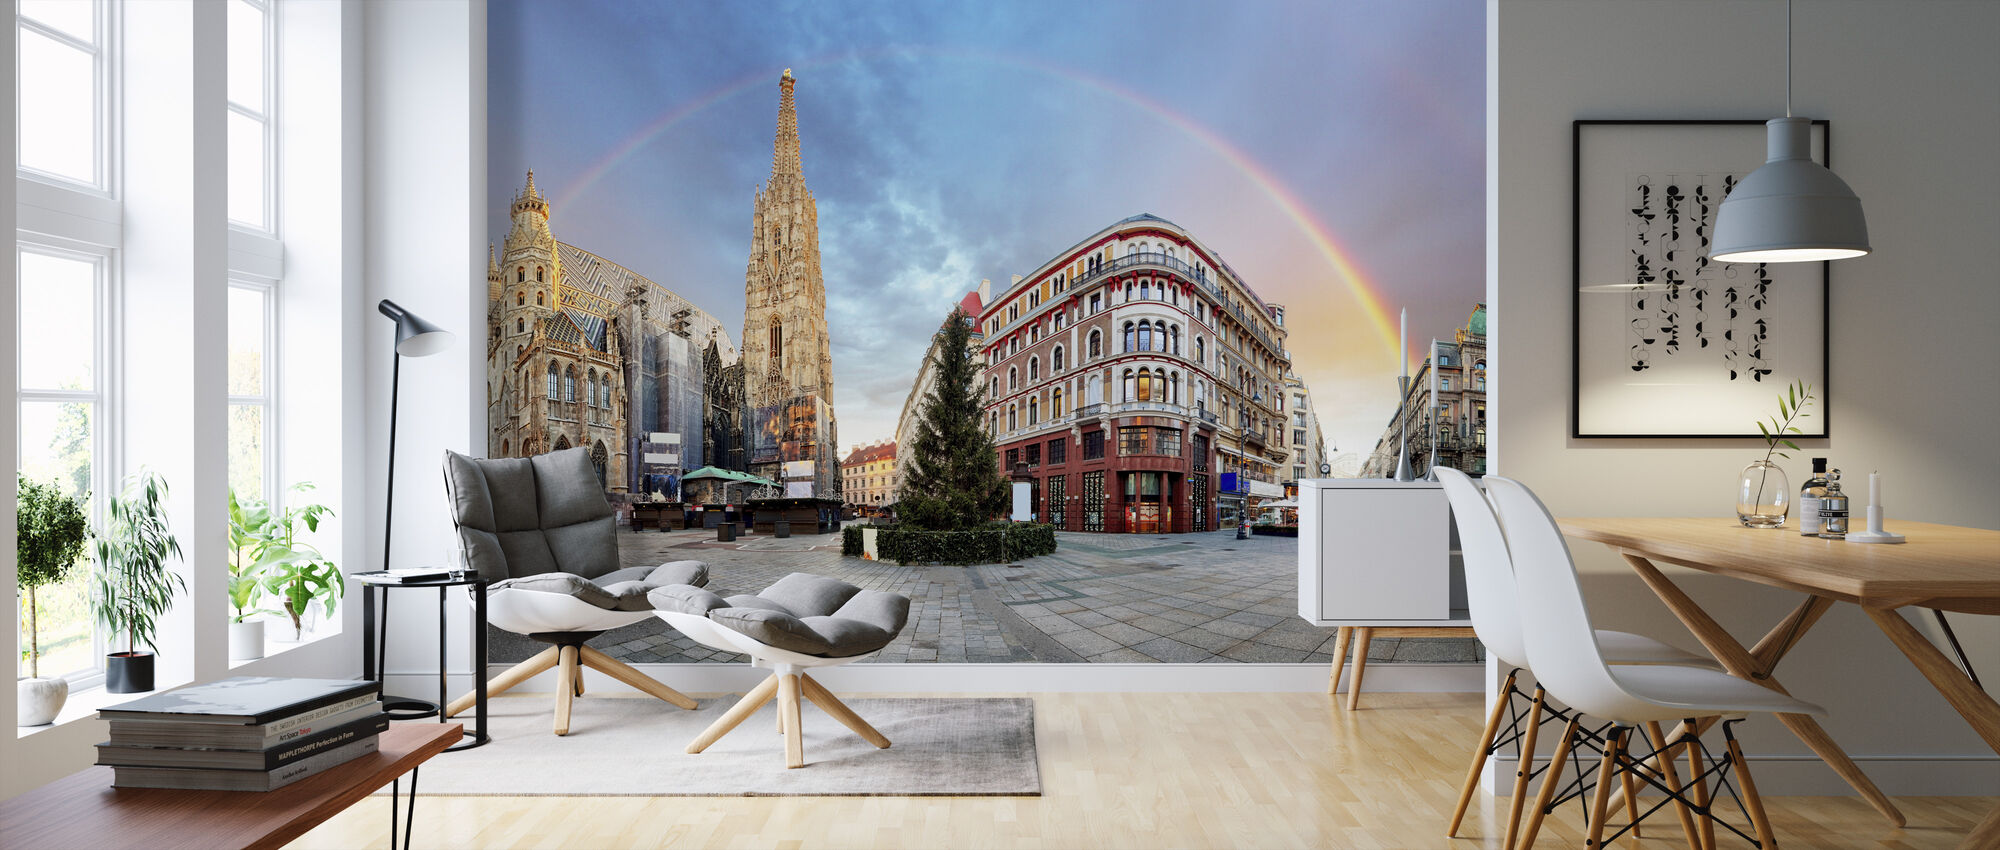 Vienna Square with Rainbow - Wallpaper - Living Room